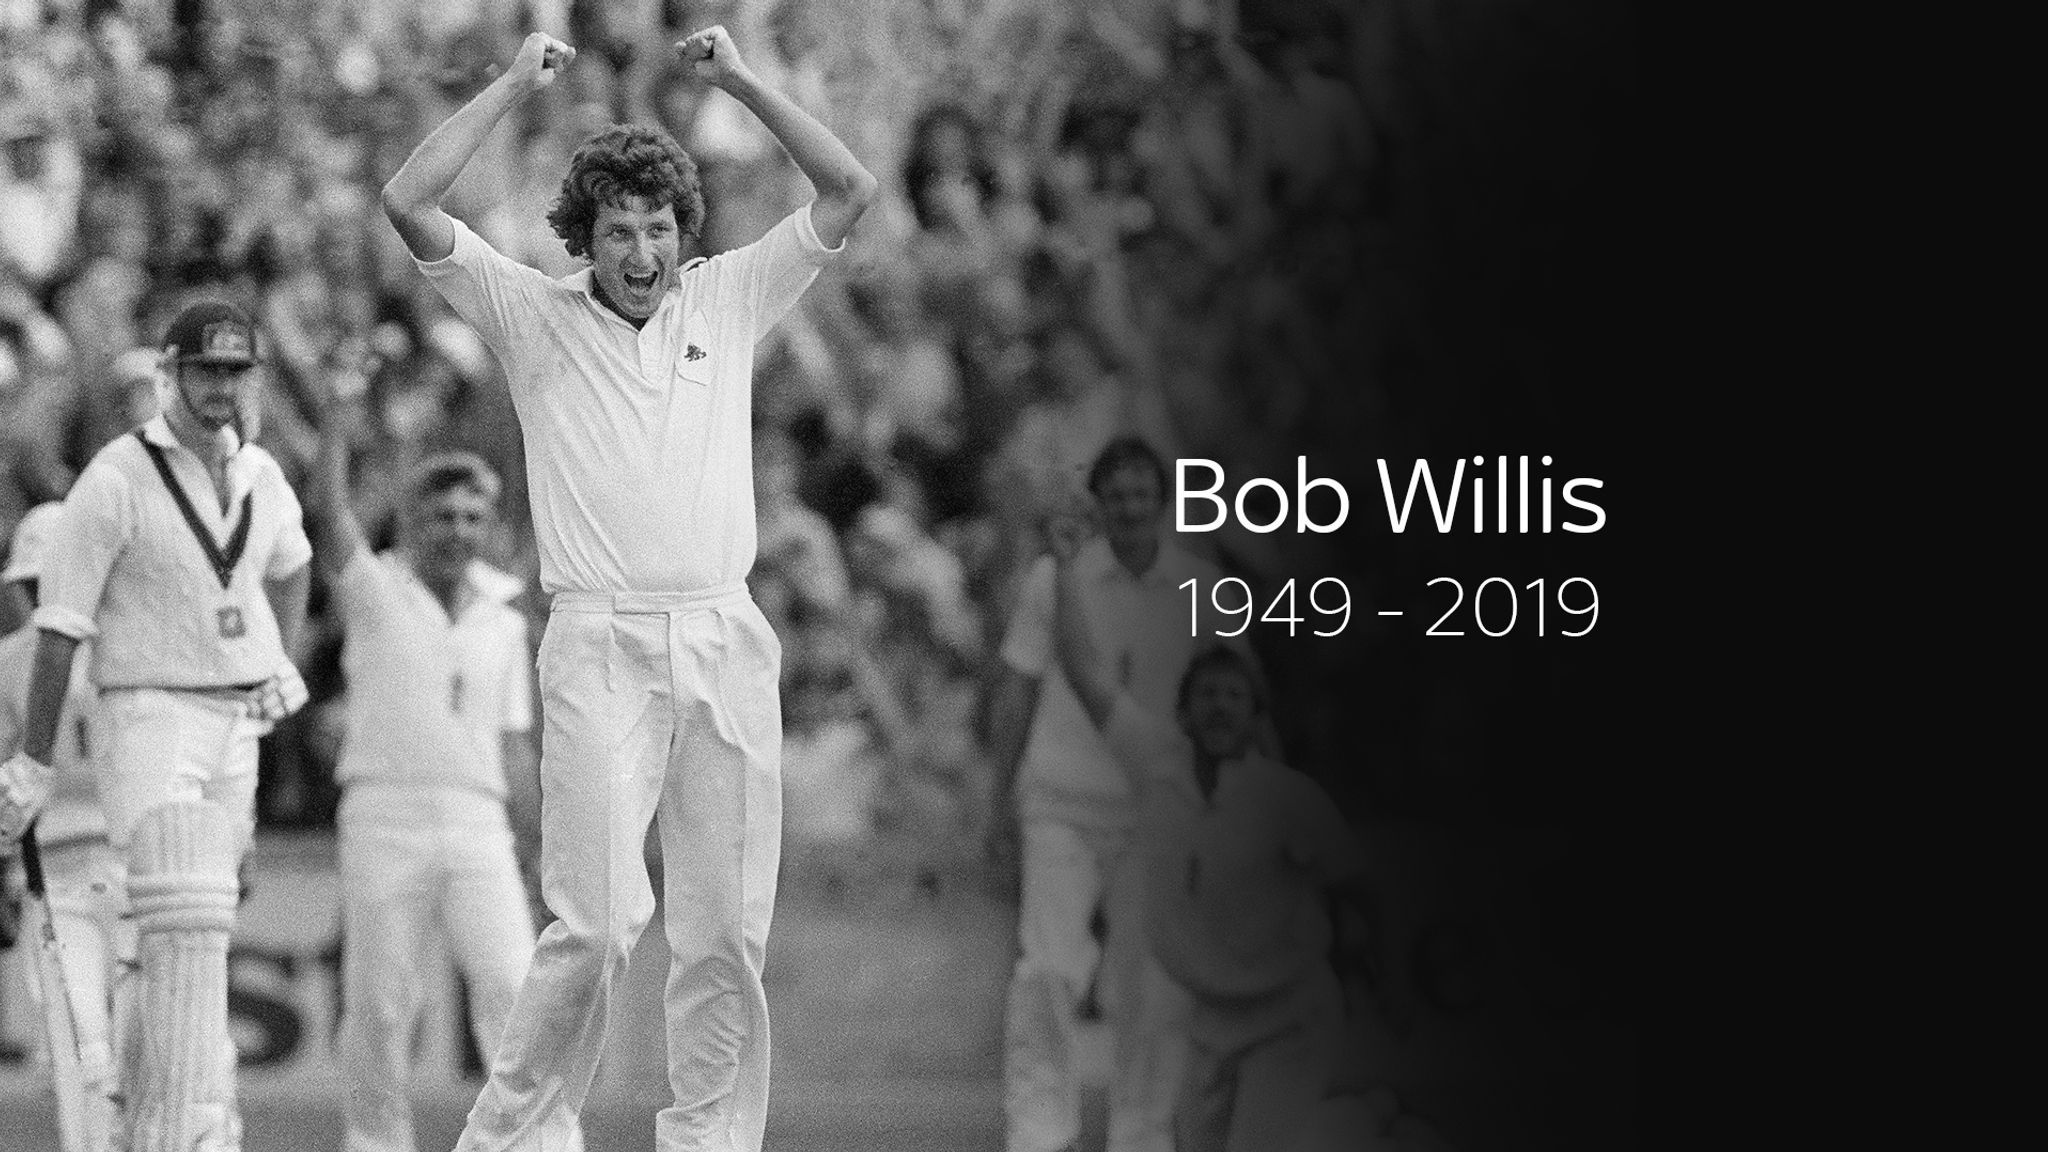 Rod Studd recalls the day Bob Willis stole his taxi at Headingley